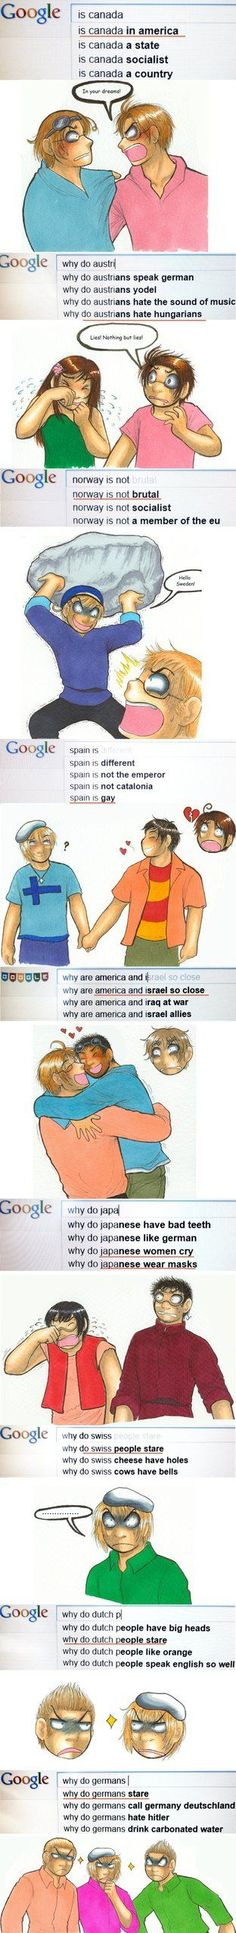 Haha , but Canada IS in America. America is a continent, not a frucking country.